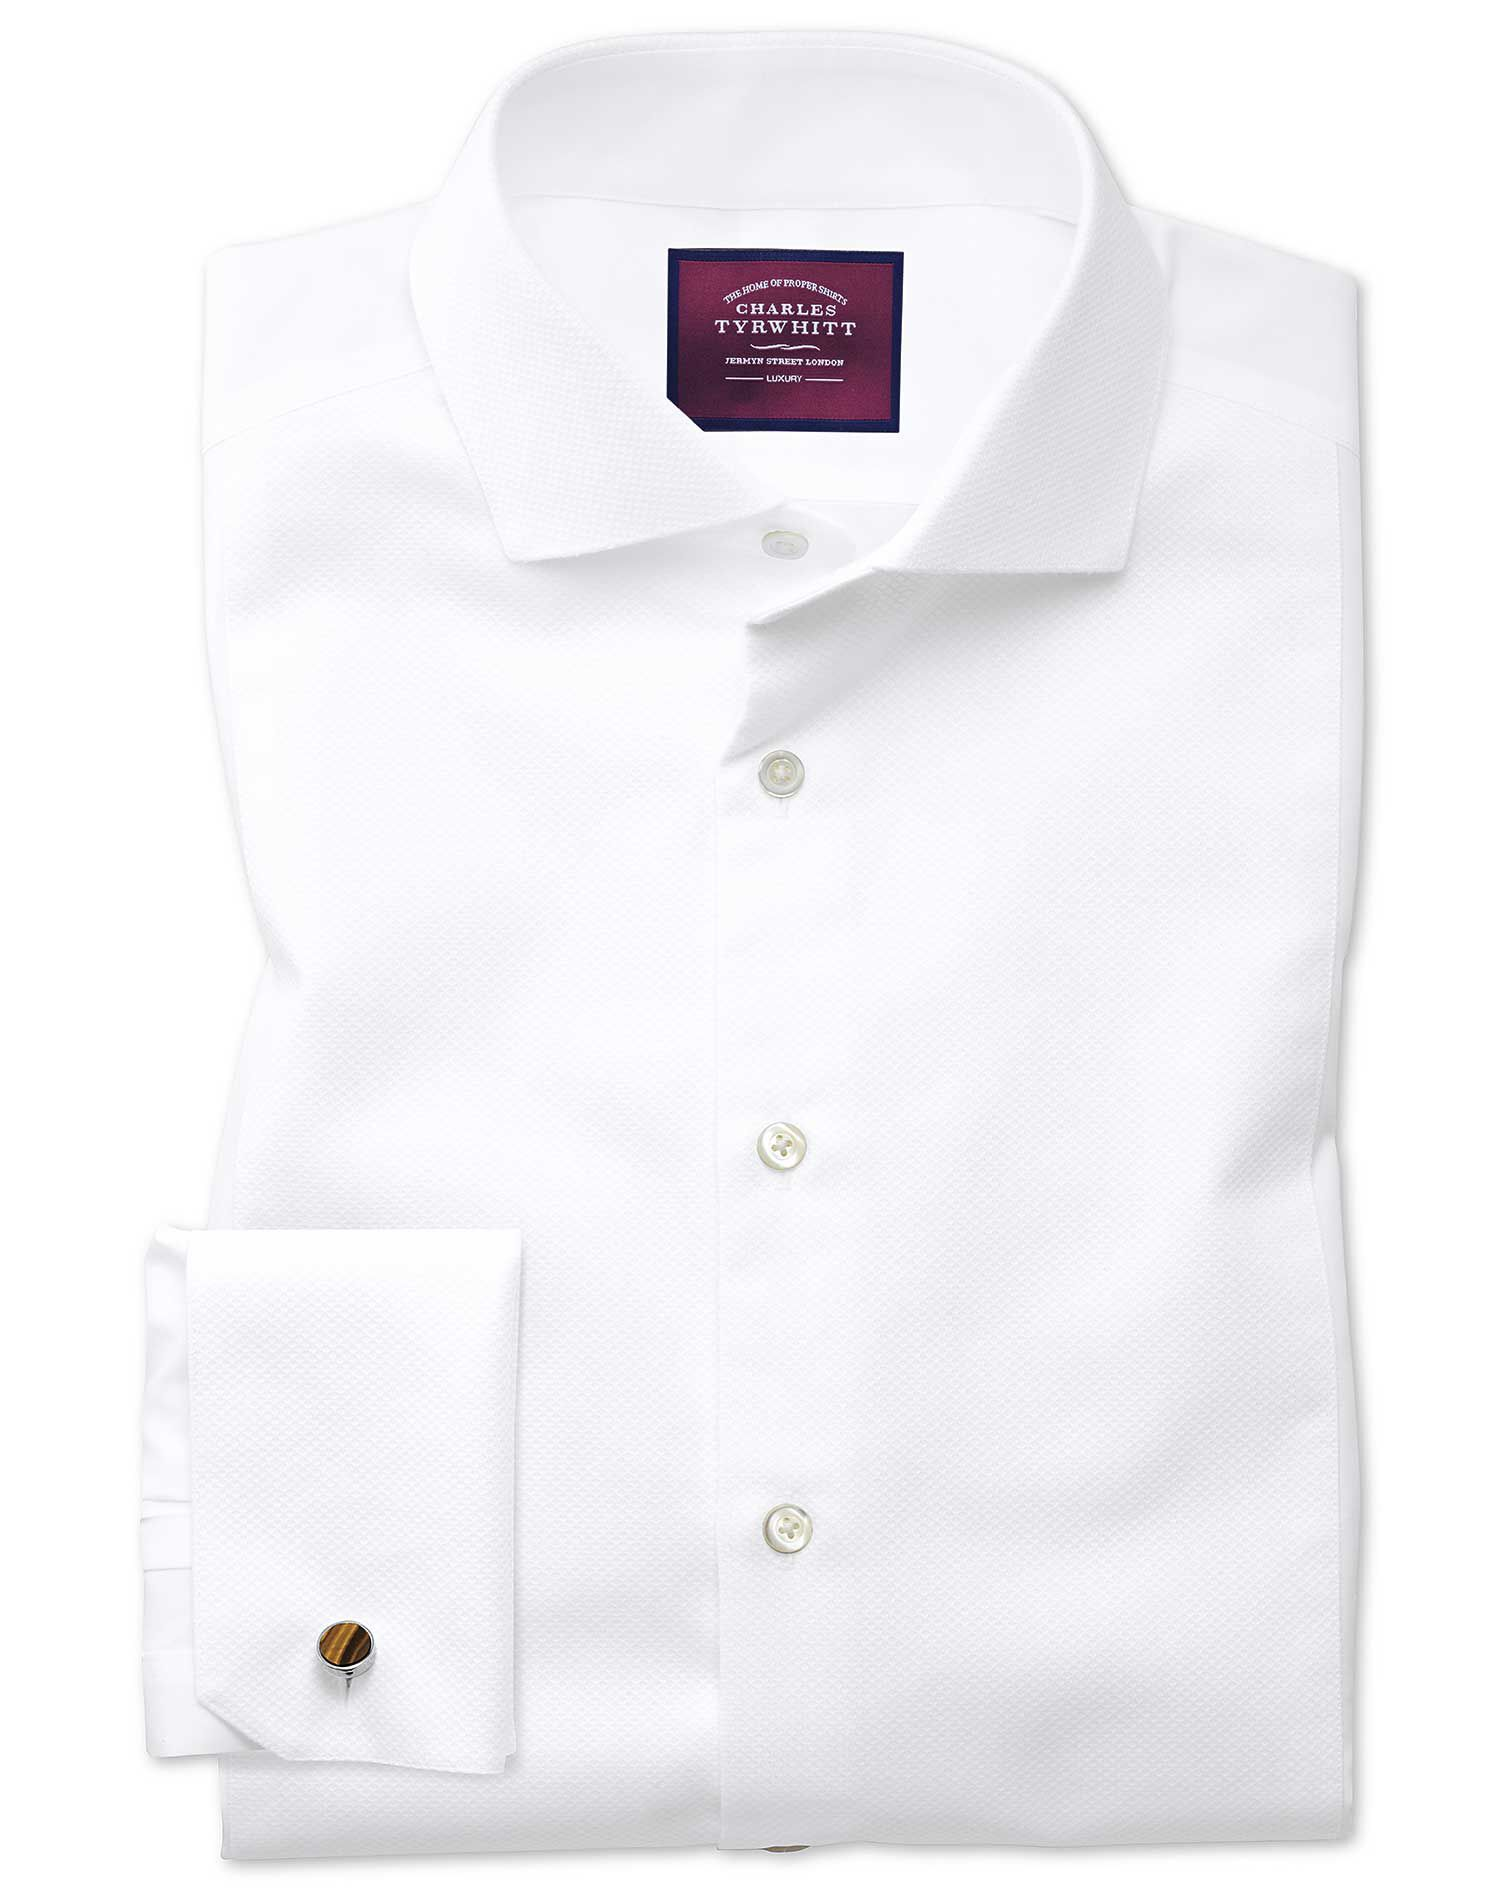 Extra Slim Fit Cutaway Non-Iron Luxury White Cotton Formal Shirt Double Cuff Size 17/35 by Charles T